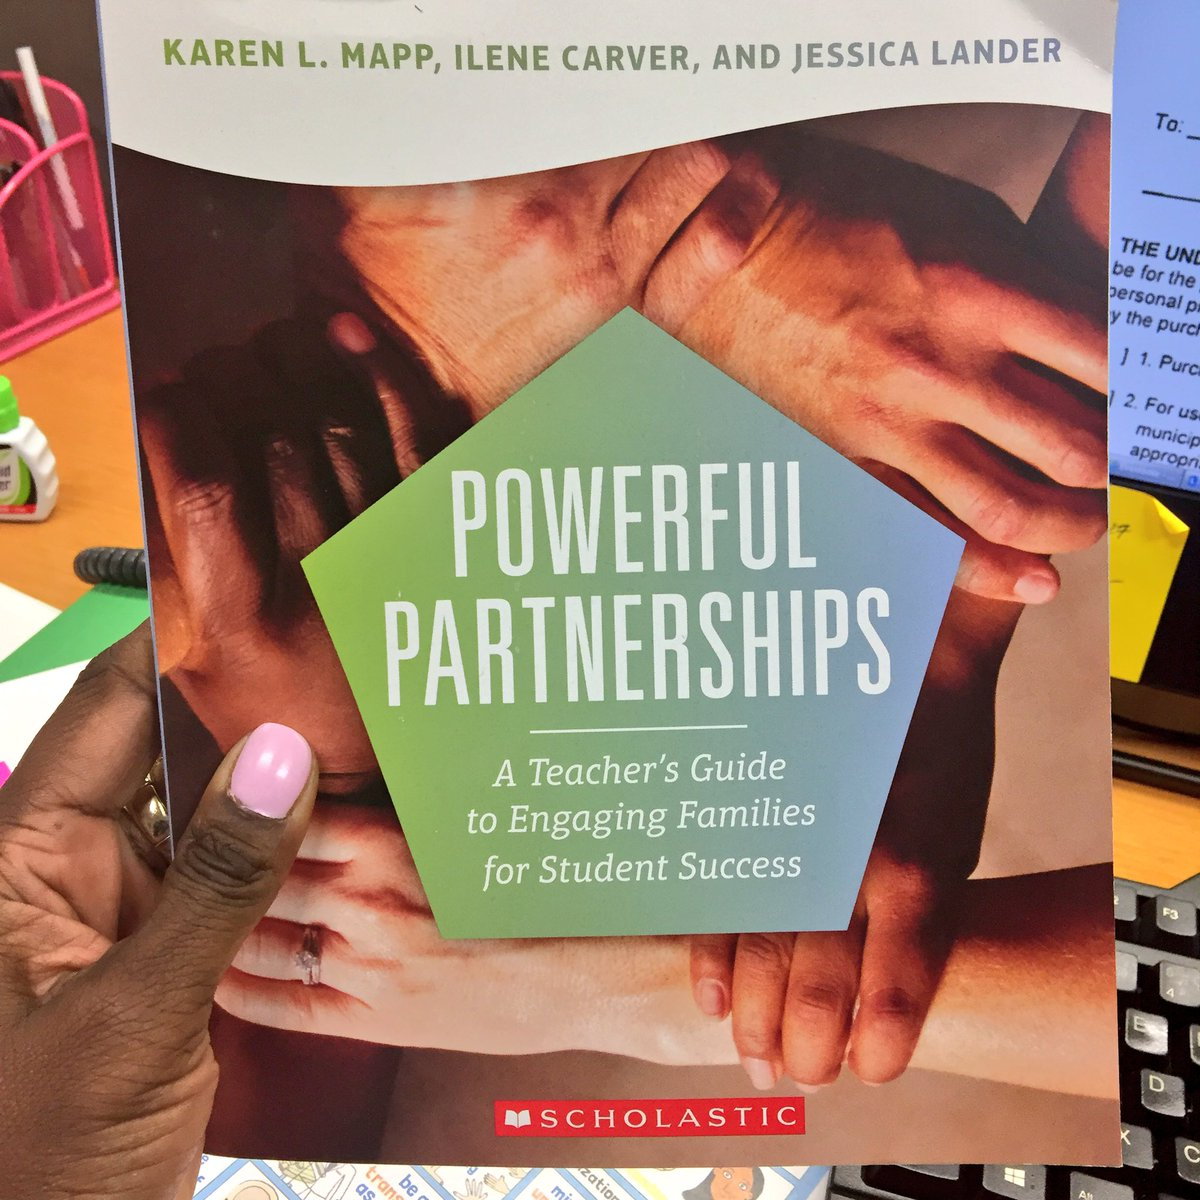 A special shout out to @DrEmilyAMassey who brought this back for us! #she&#39;sthebest And it&#39;s autographed by @karen_mapp  #APSFamiliesEngage<br>http://pic.twitter.com/xvedmTnKNR &ndash; à Atlanta Public Schools